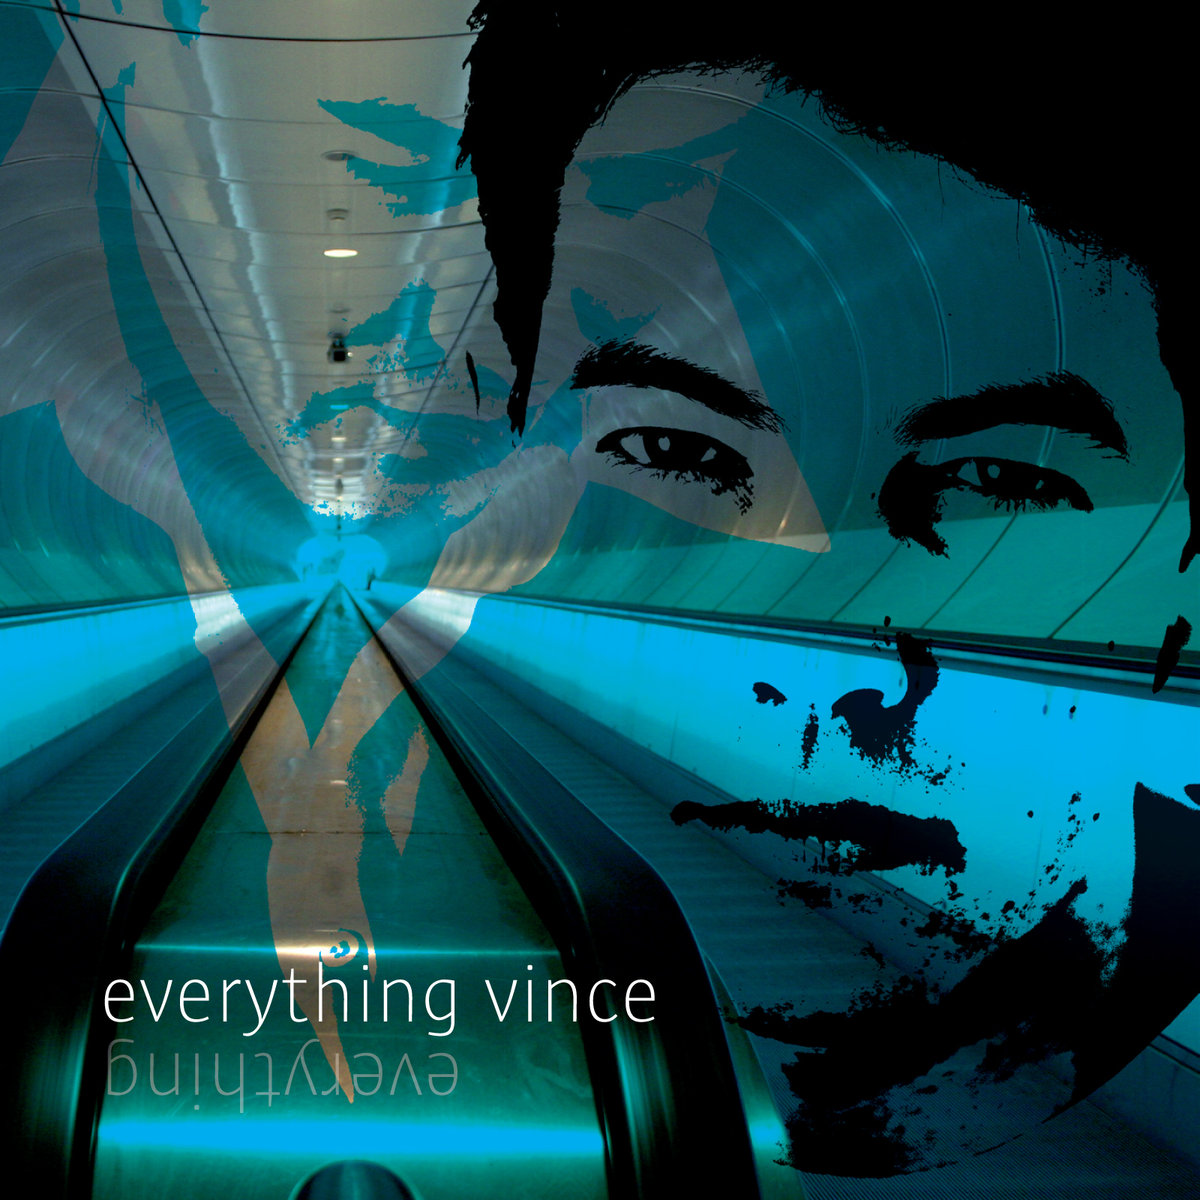 Vince - Beams of a Rainbow @ 'Everything' album (pop, pop punk)